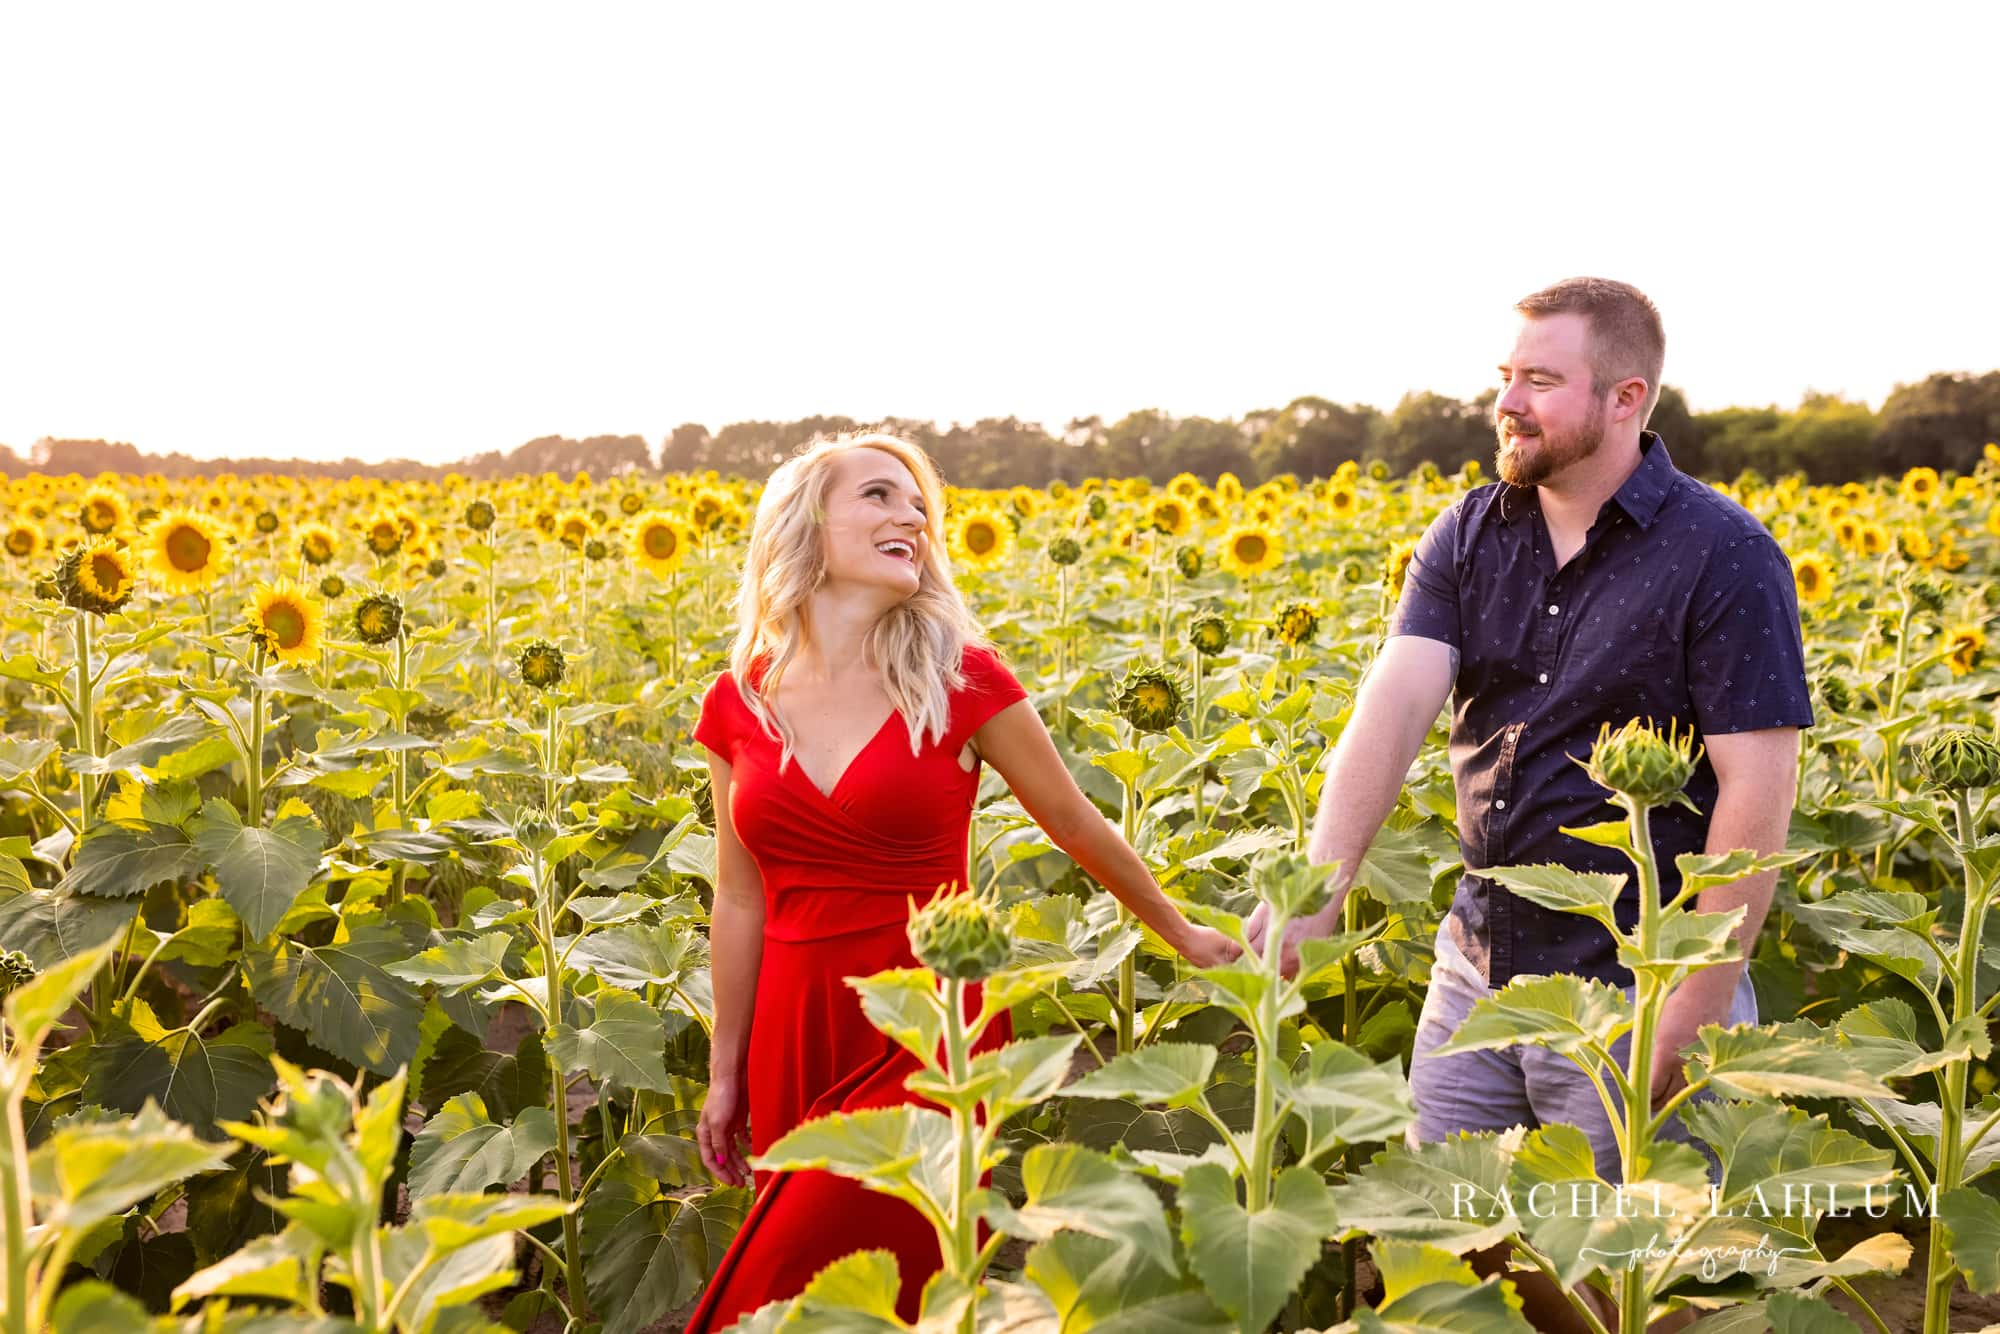 Laura looks back at Kelly as they hold hands through a sunflower field in Isanti, MN.